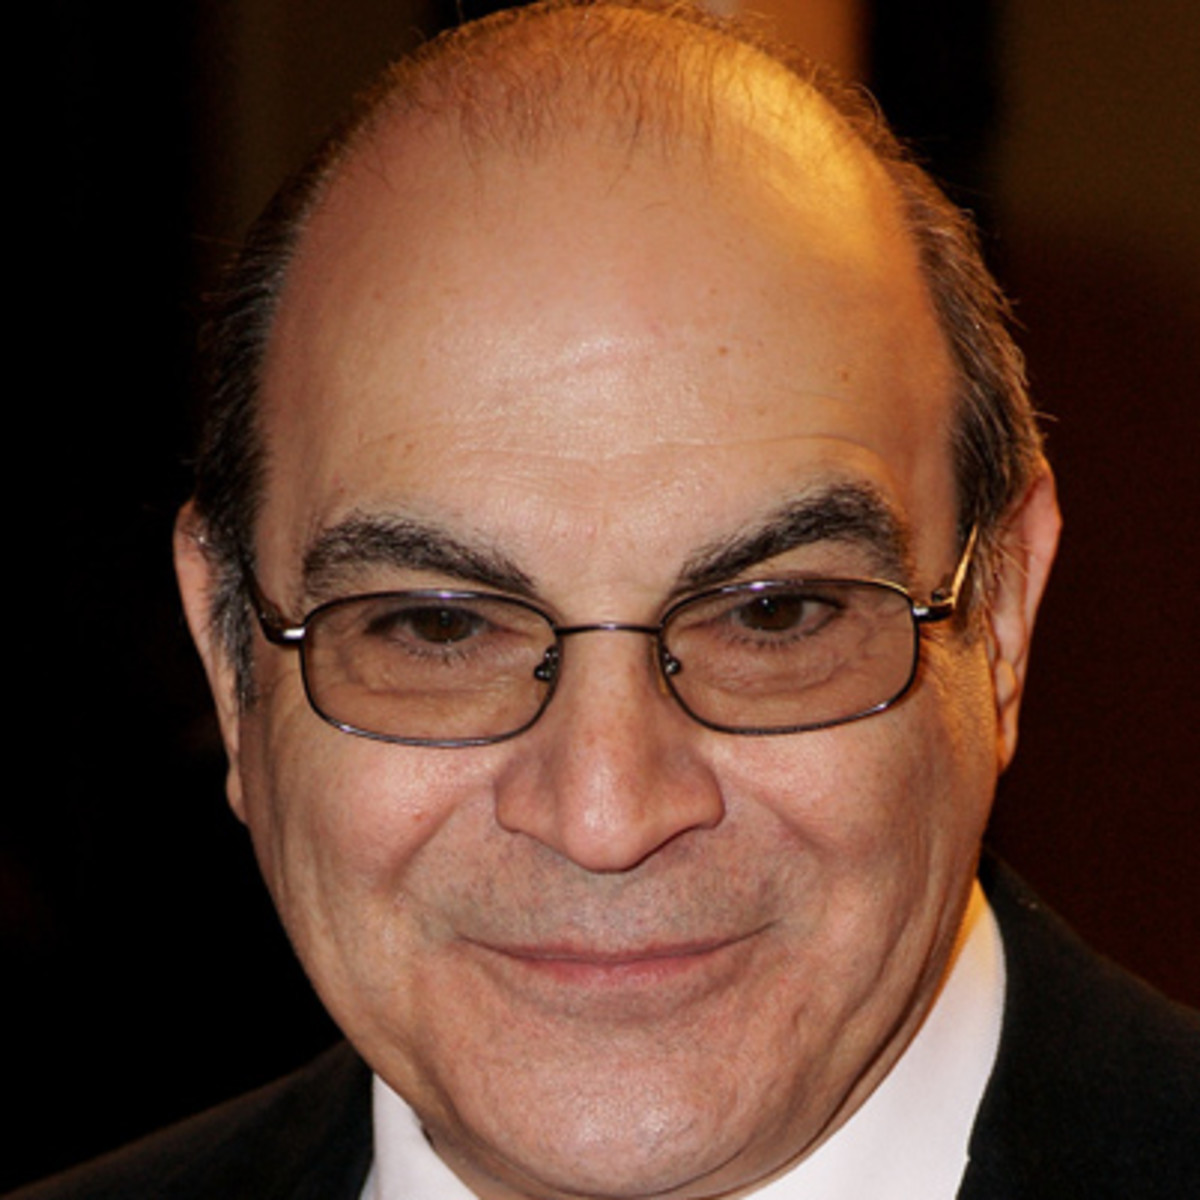 Cleavage Sideboobs David Suchet (born 1946)  nudes (63 pictures), Snapchat, in bikini